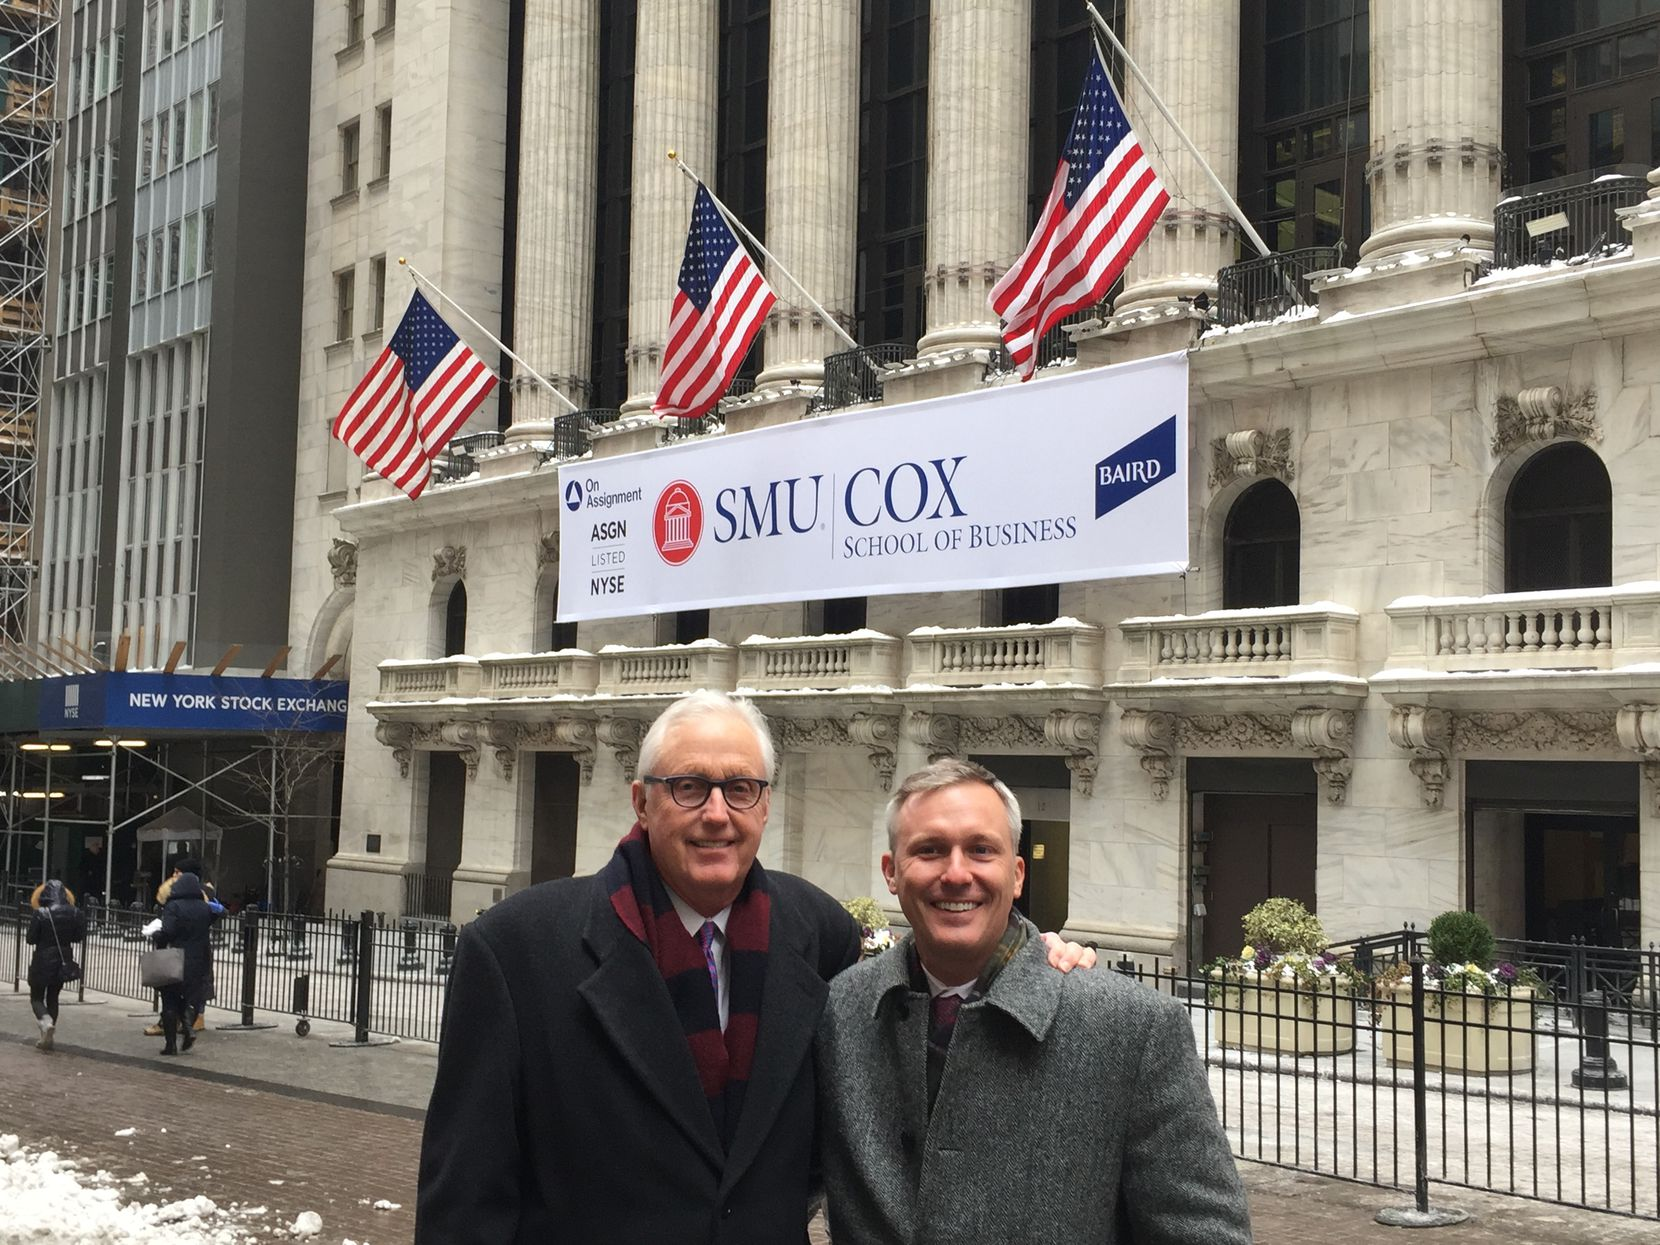 David Miller and his son, Kyle, stood in front of the New York Stock Exchange on Jan. 8 when SMU's Cox School of Business rang the closing bell.